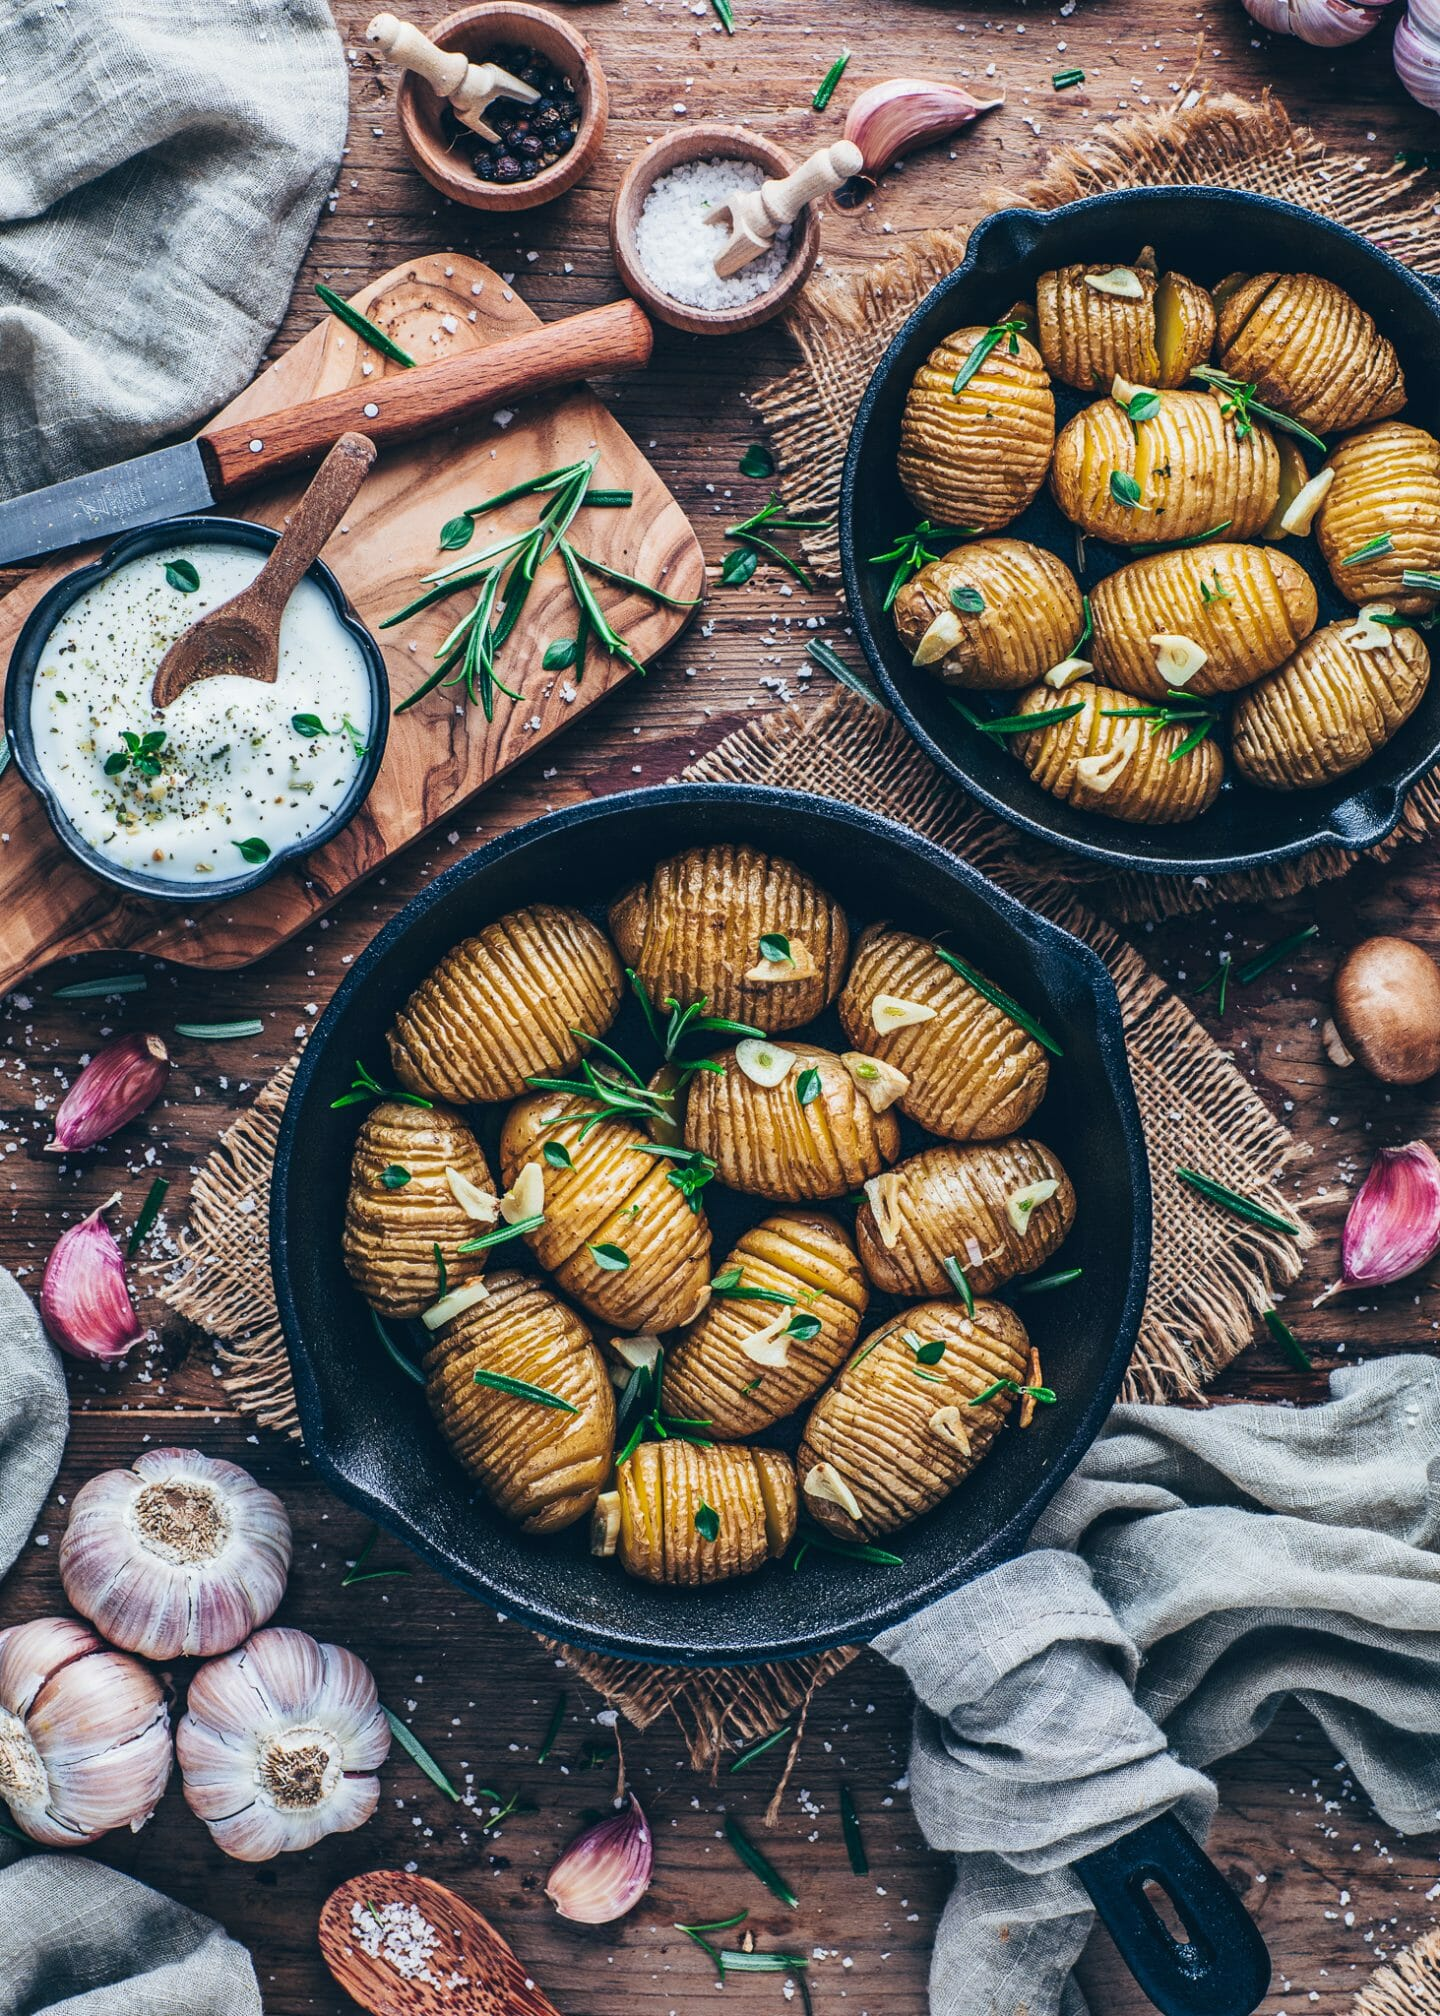 Baked Hasselback Potatoes with garlic, sea salt, rosemary, thyme in a skillet